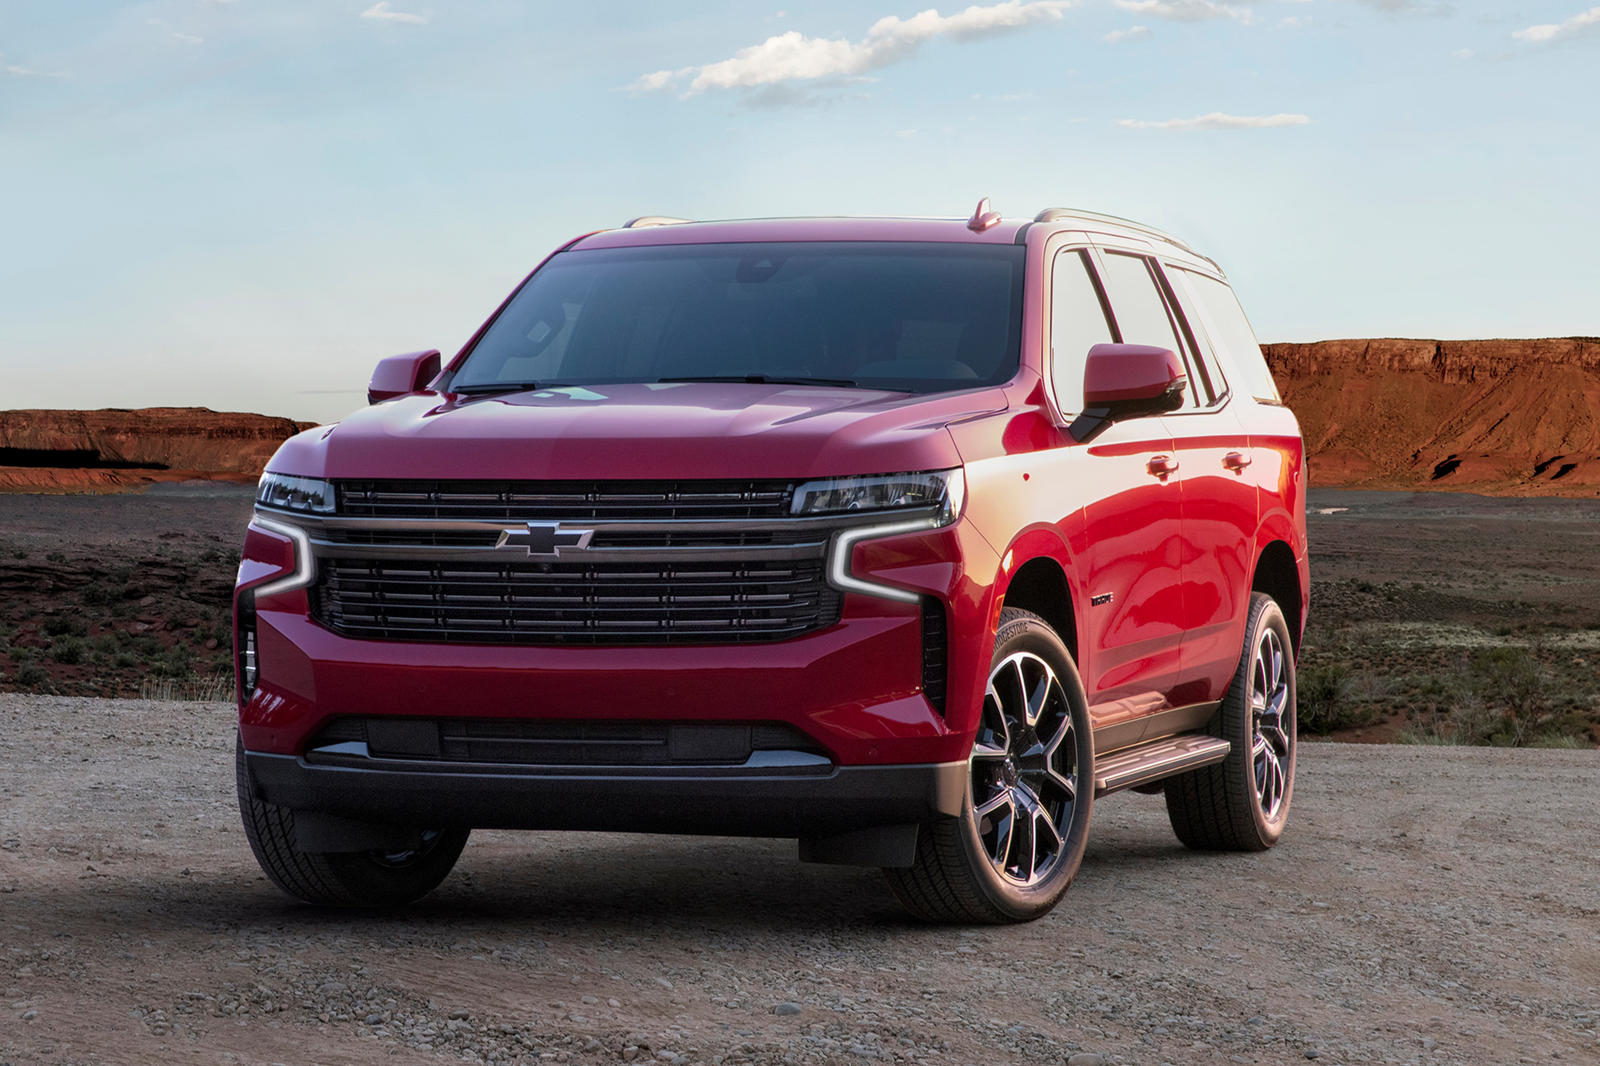 Chevy Tahoe Fans Could Have An Awesome Surprise Coming